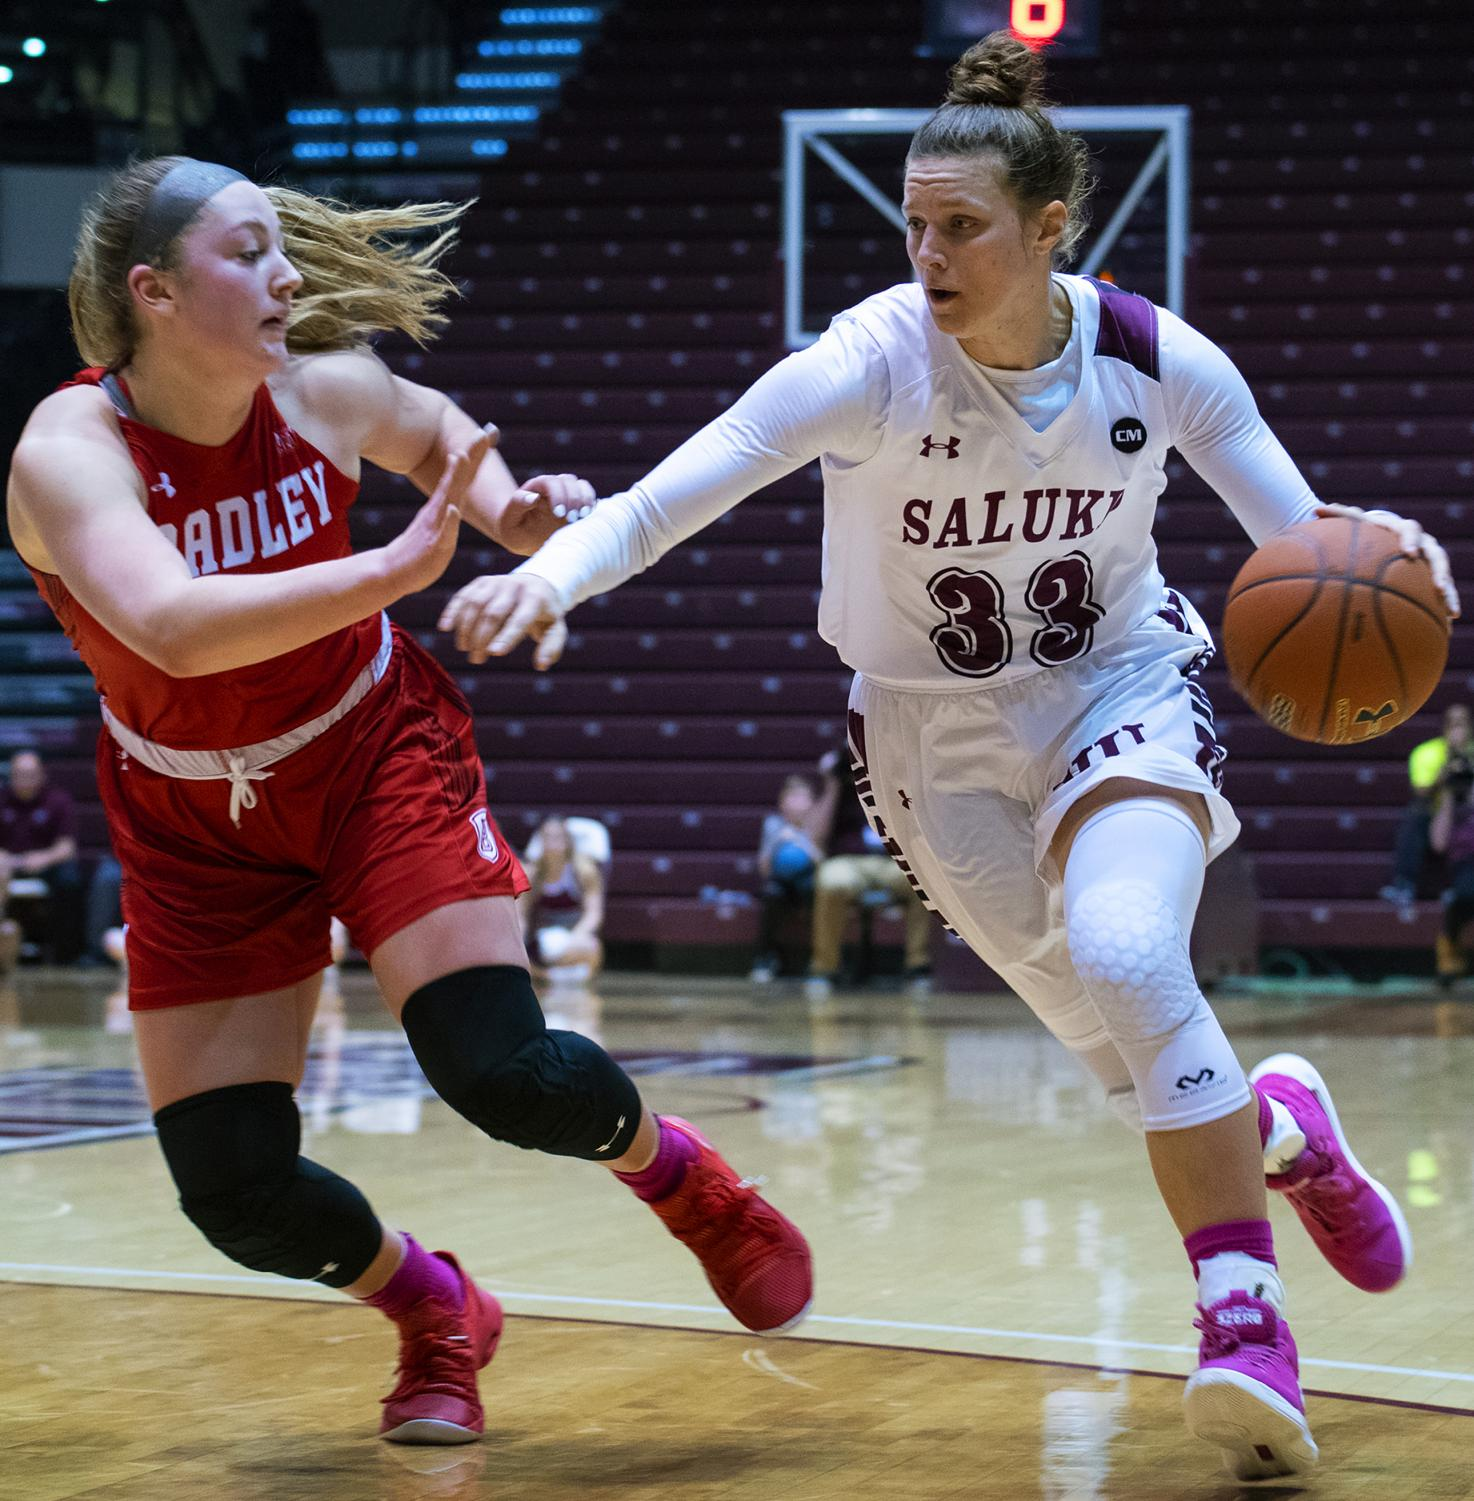 Saluki+sophomore+forward+Rachel+Pudlowski+defends+the+ball+on+Friday%2C+Feb.+15%2C+2019%2C+during+the+Salukis+62-55+win+against+the+Bradley+Braves+in+the+SIU+Arena.+